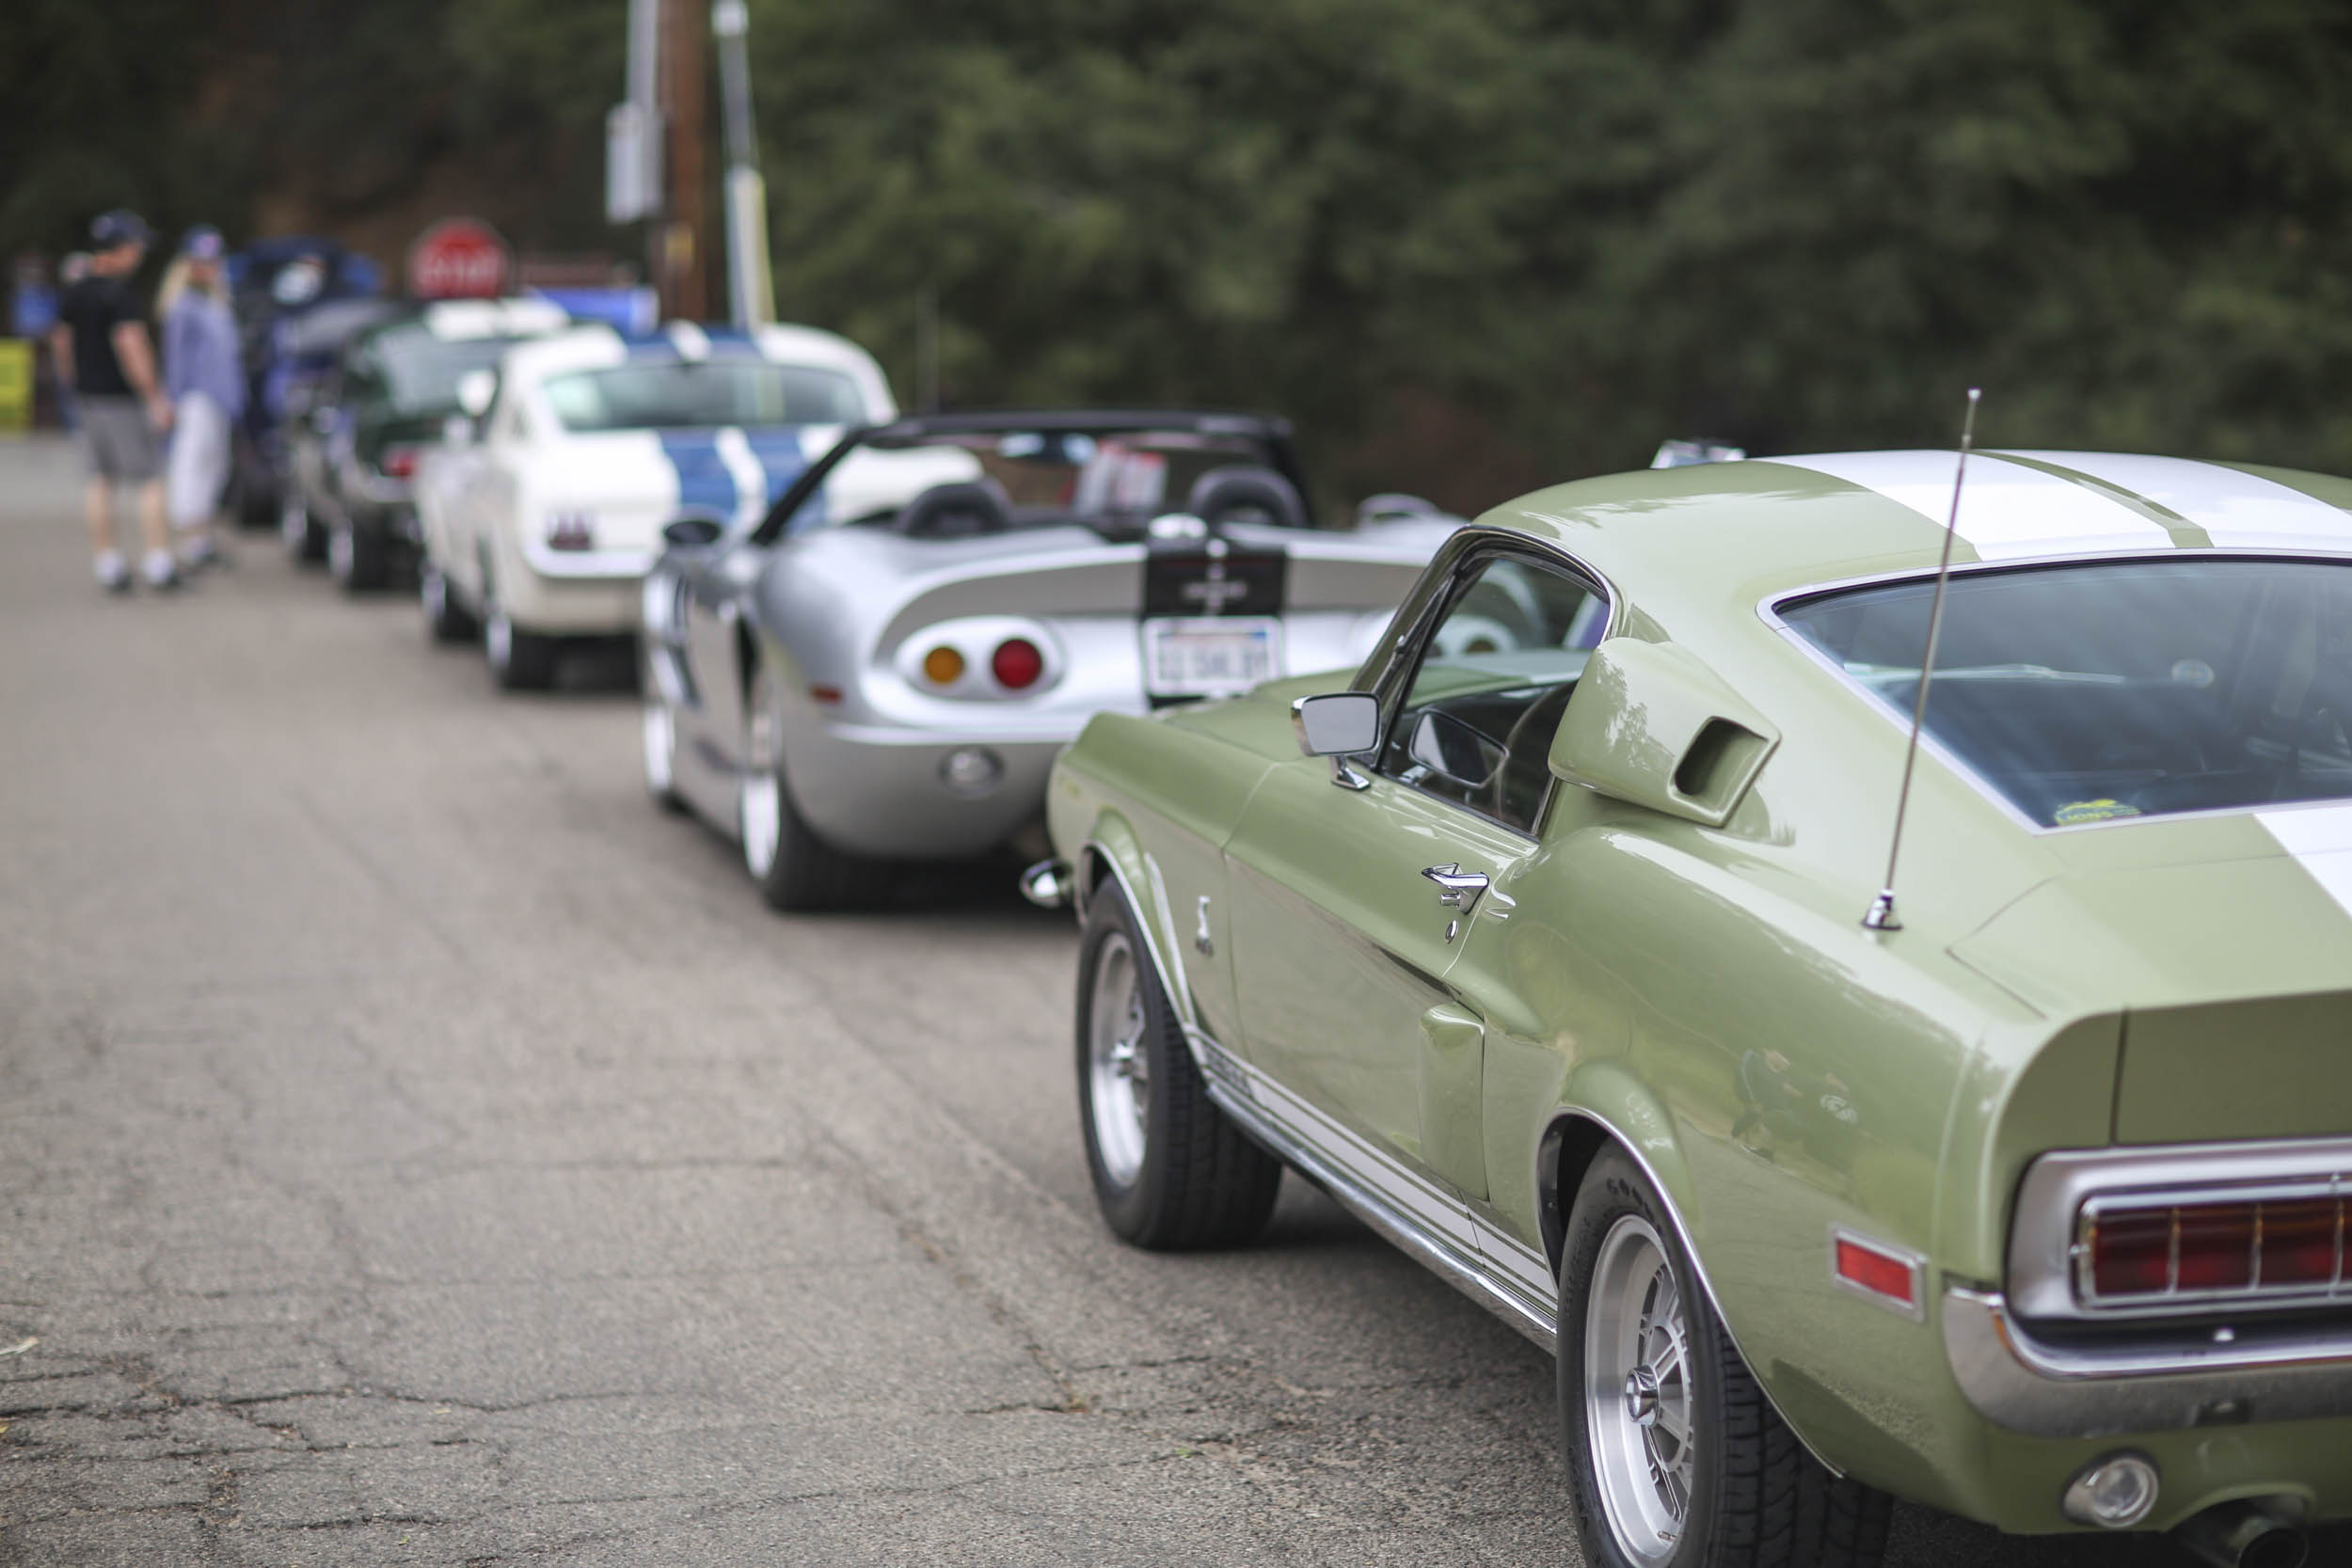 cars lined up at highway earth 2018 show